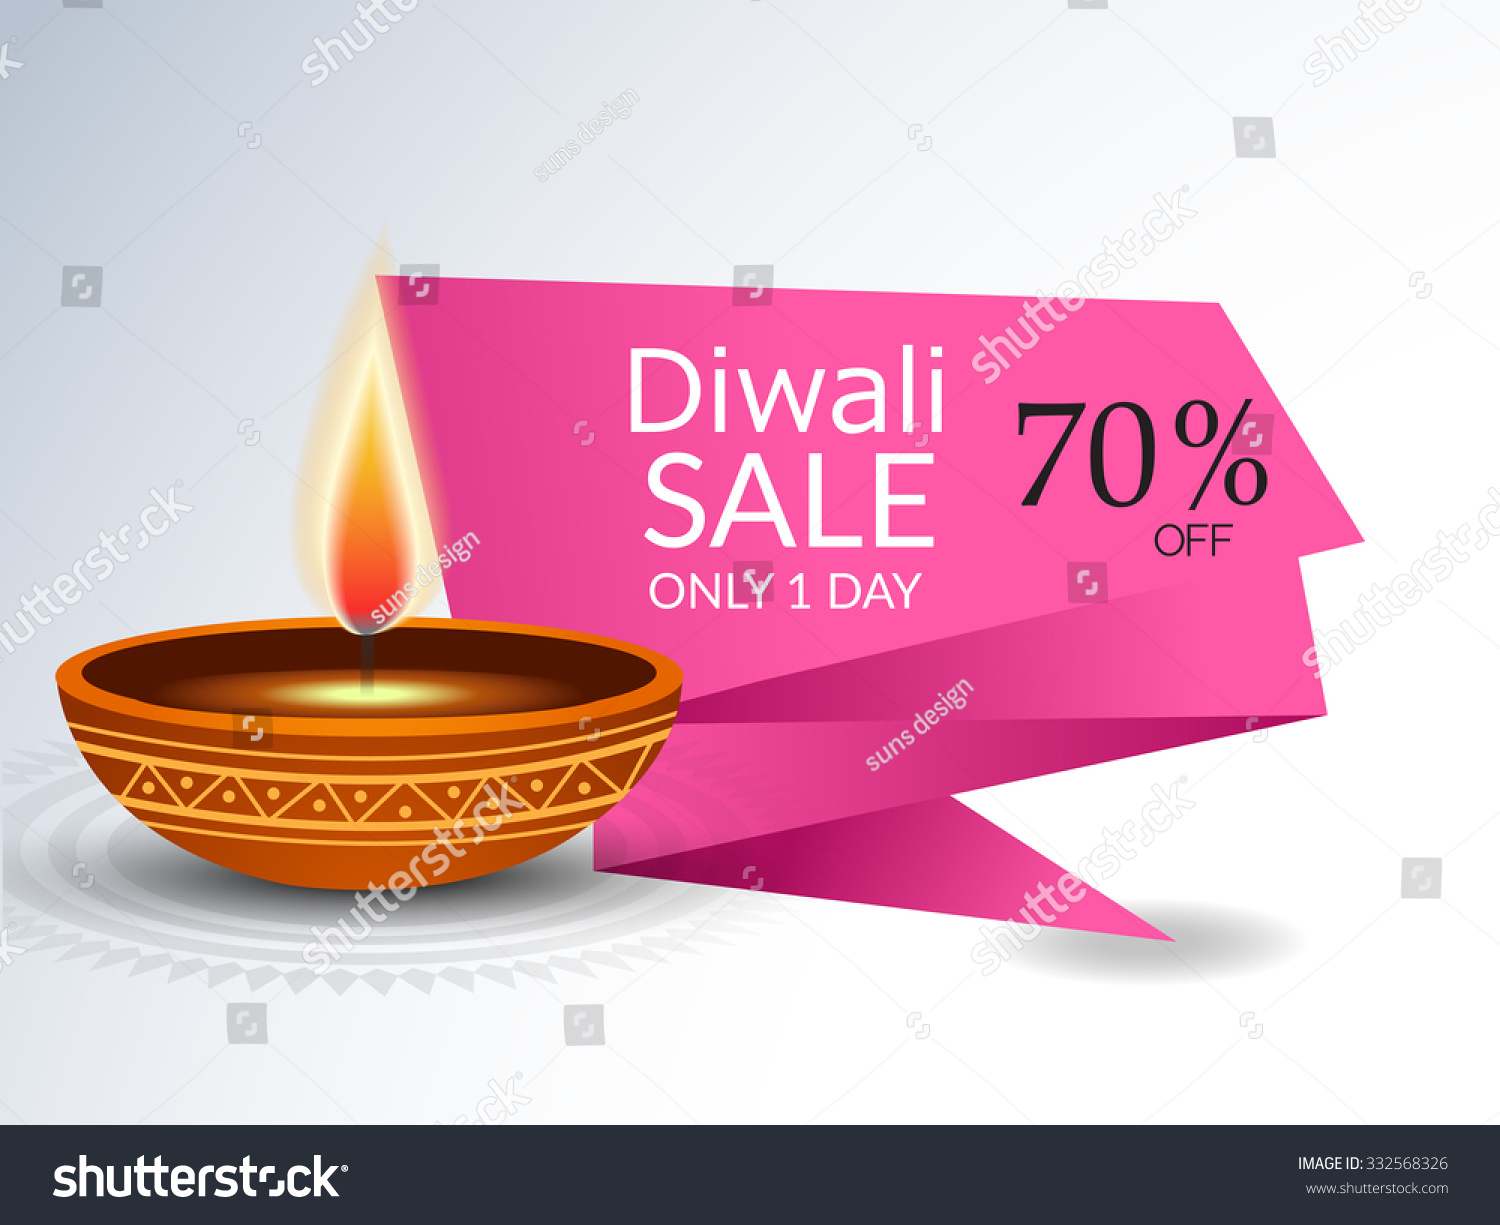 Vector Illustration Diwali Offers Sale Banners Stock